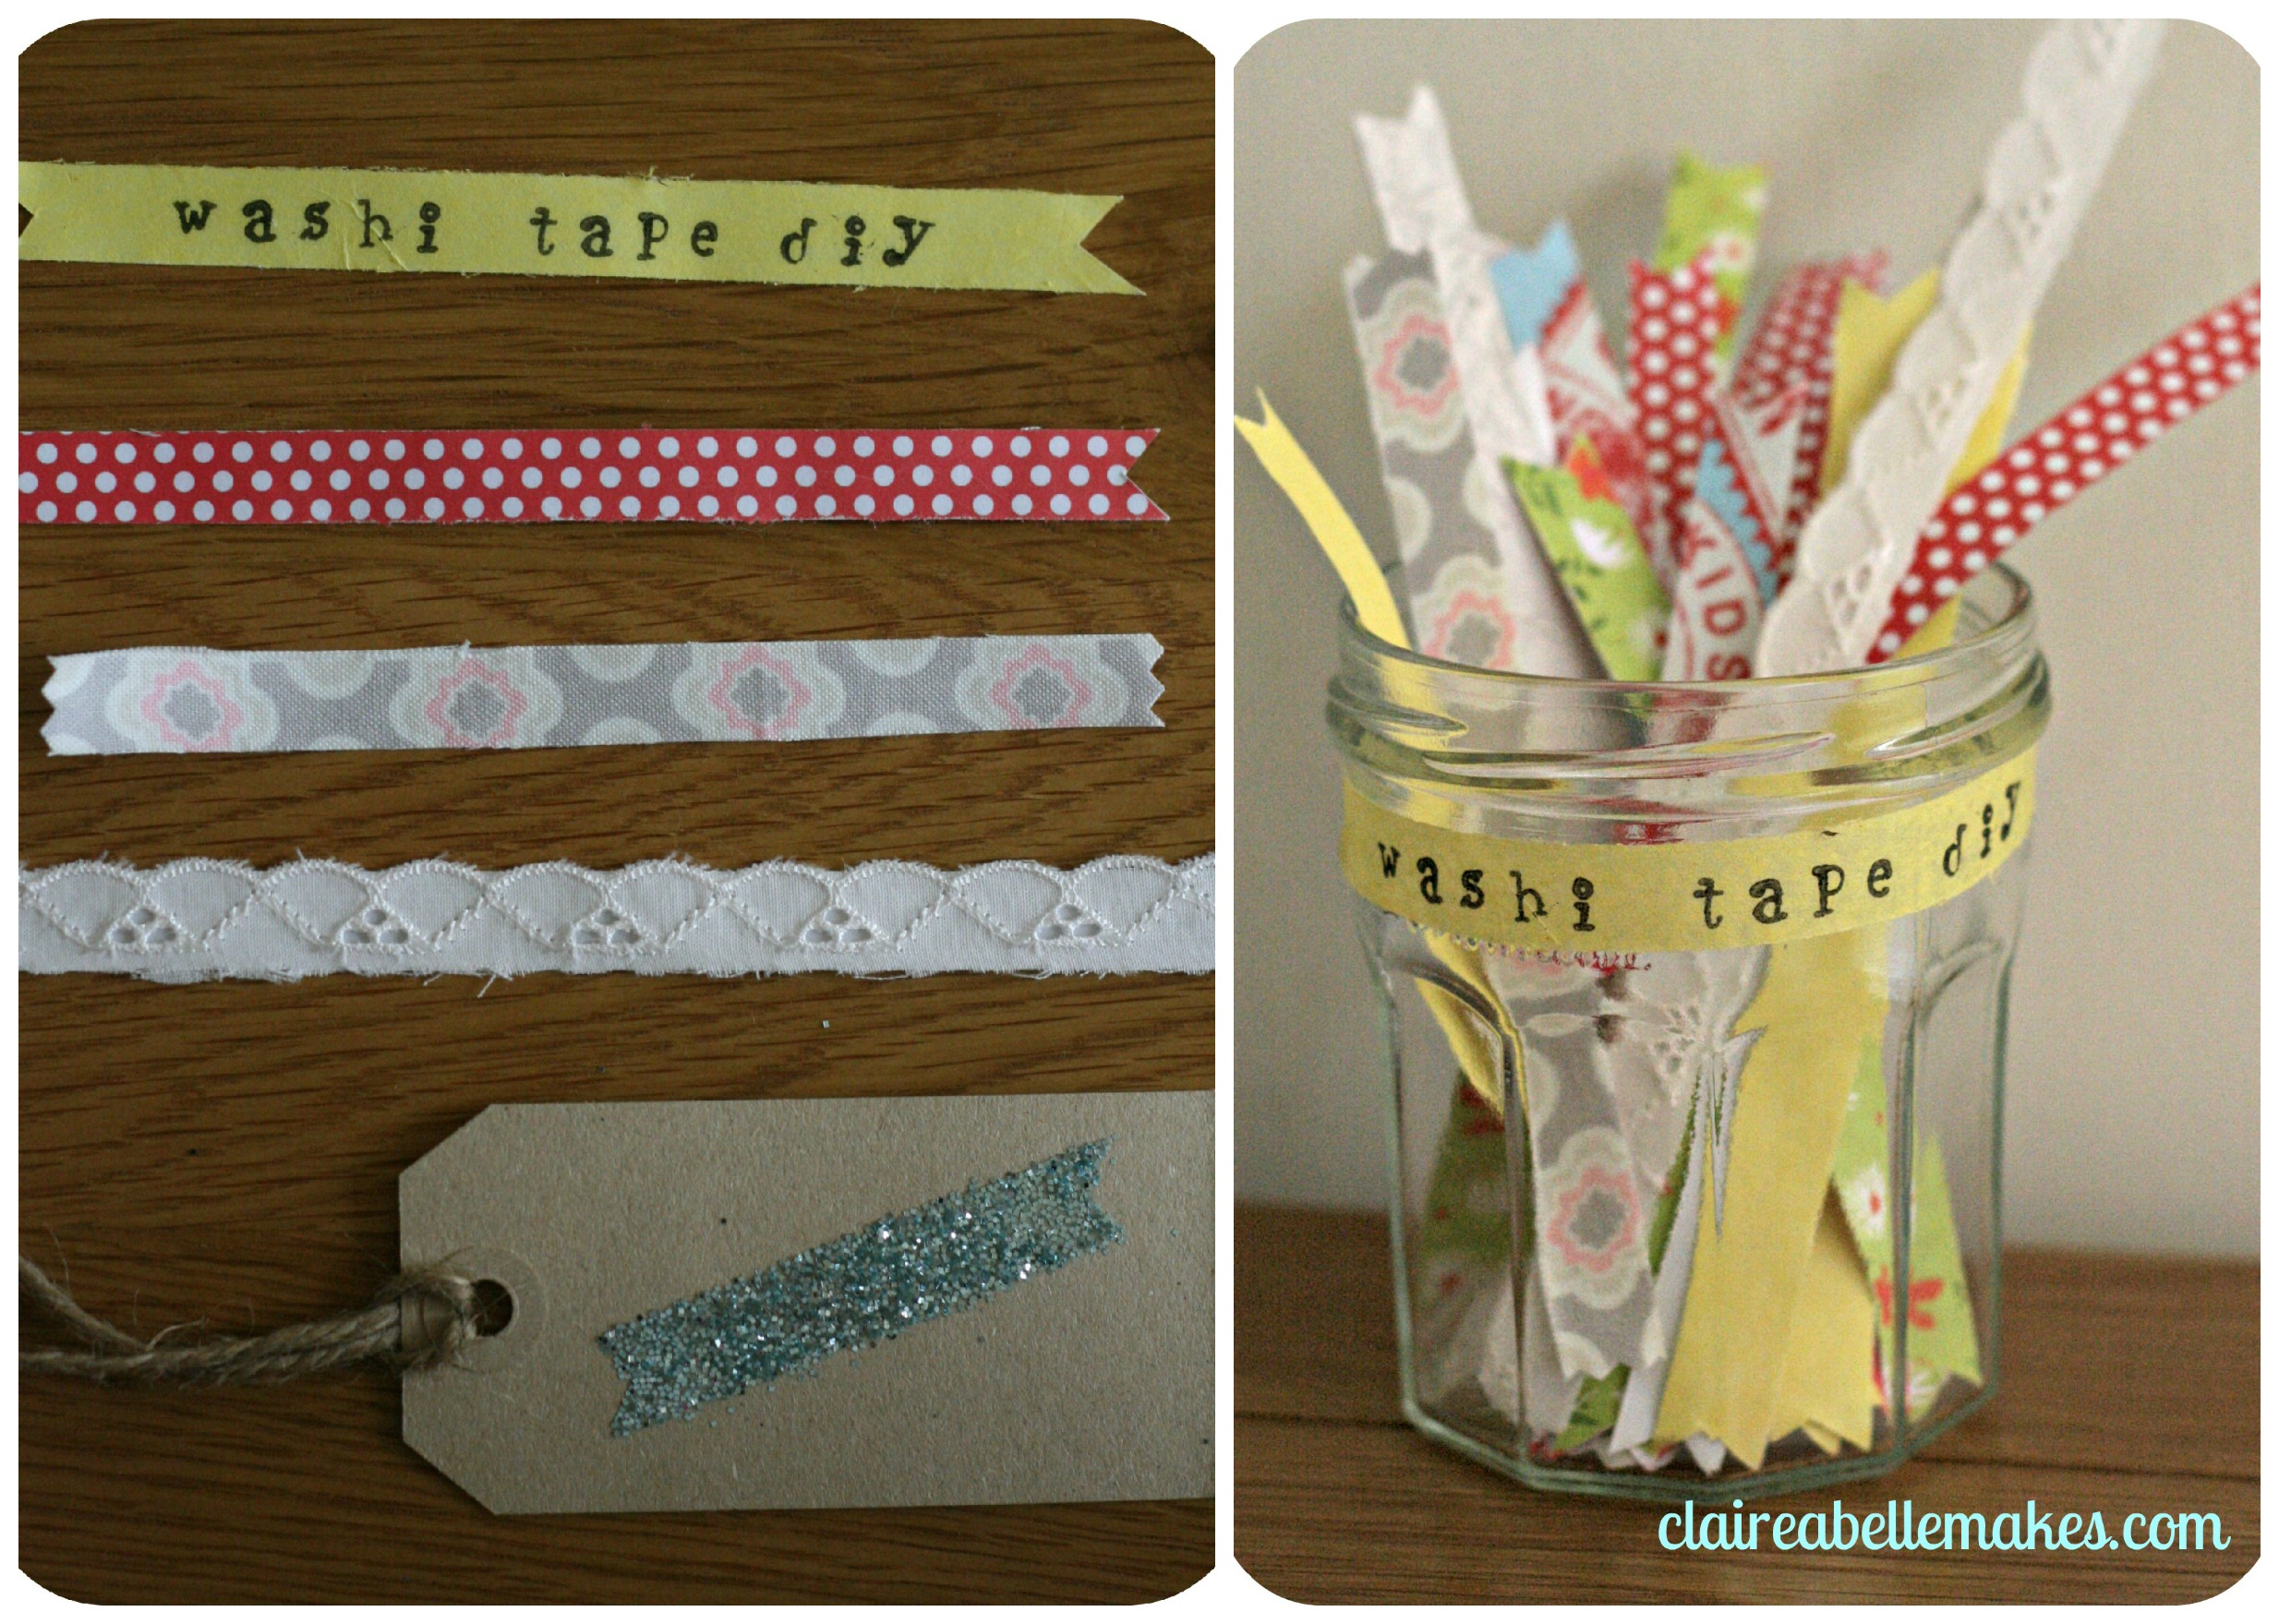 3 Washi Tape DIYs: claireabellemakes